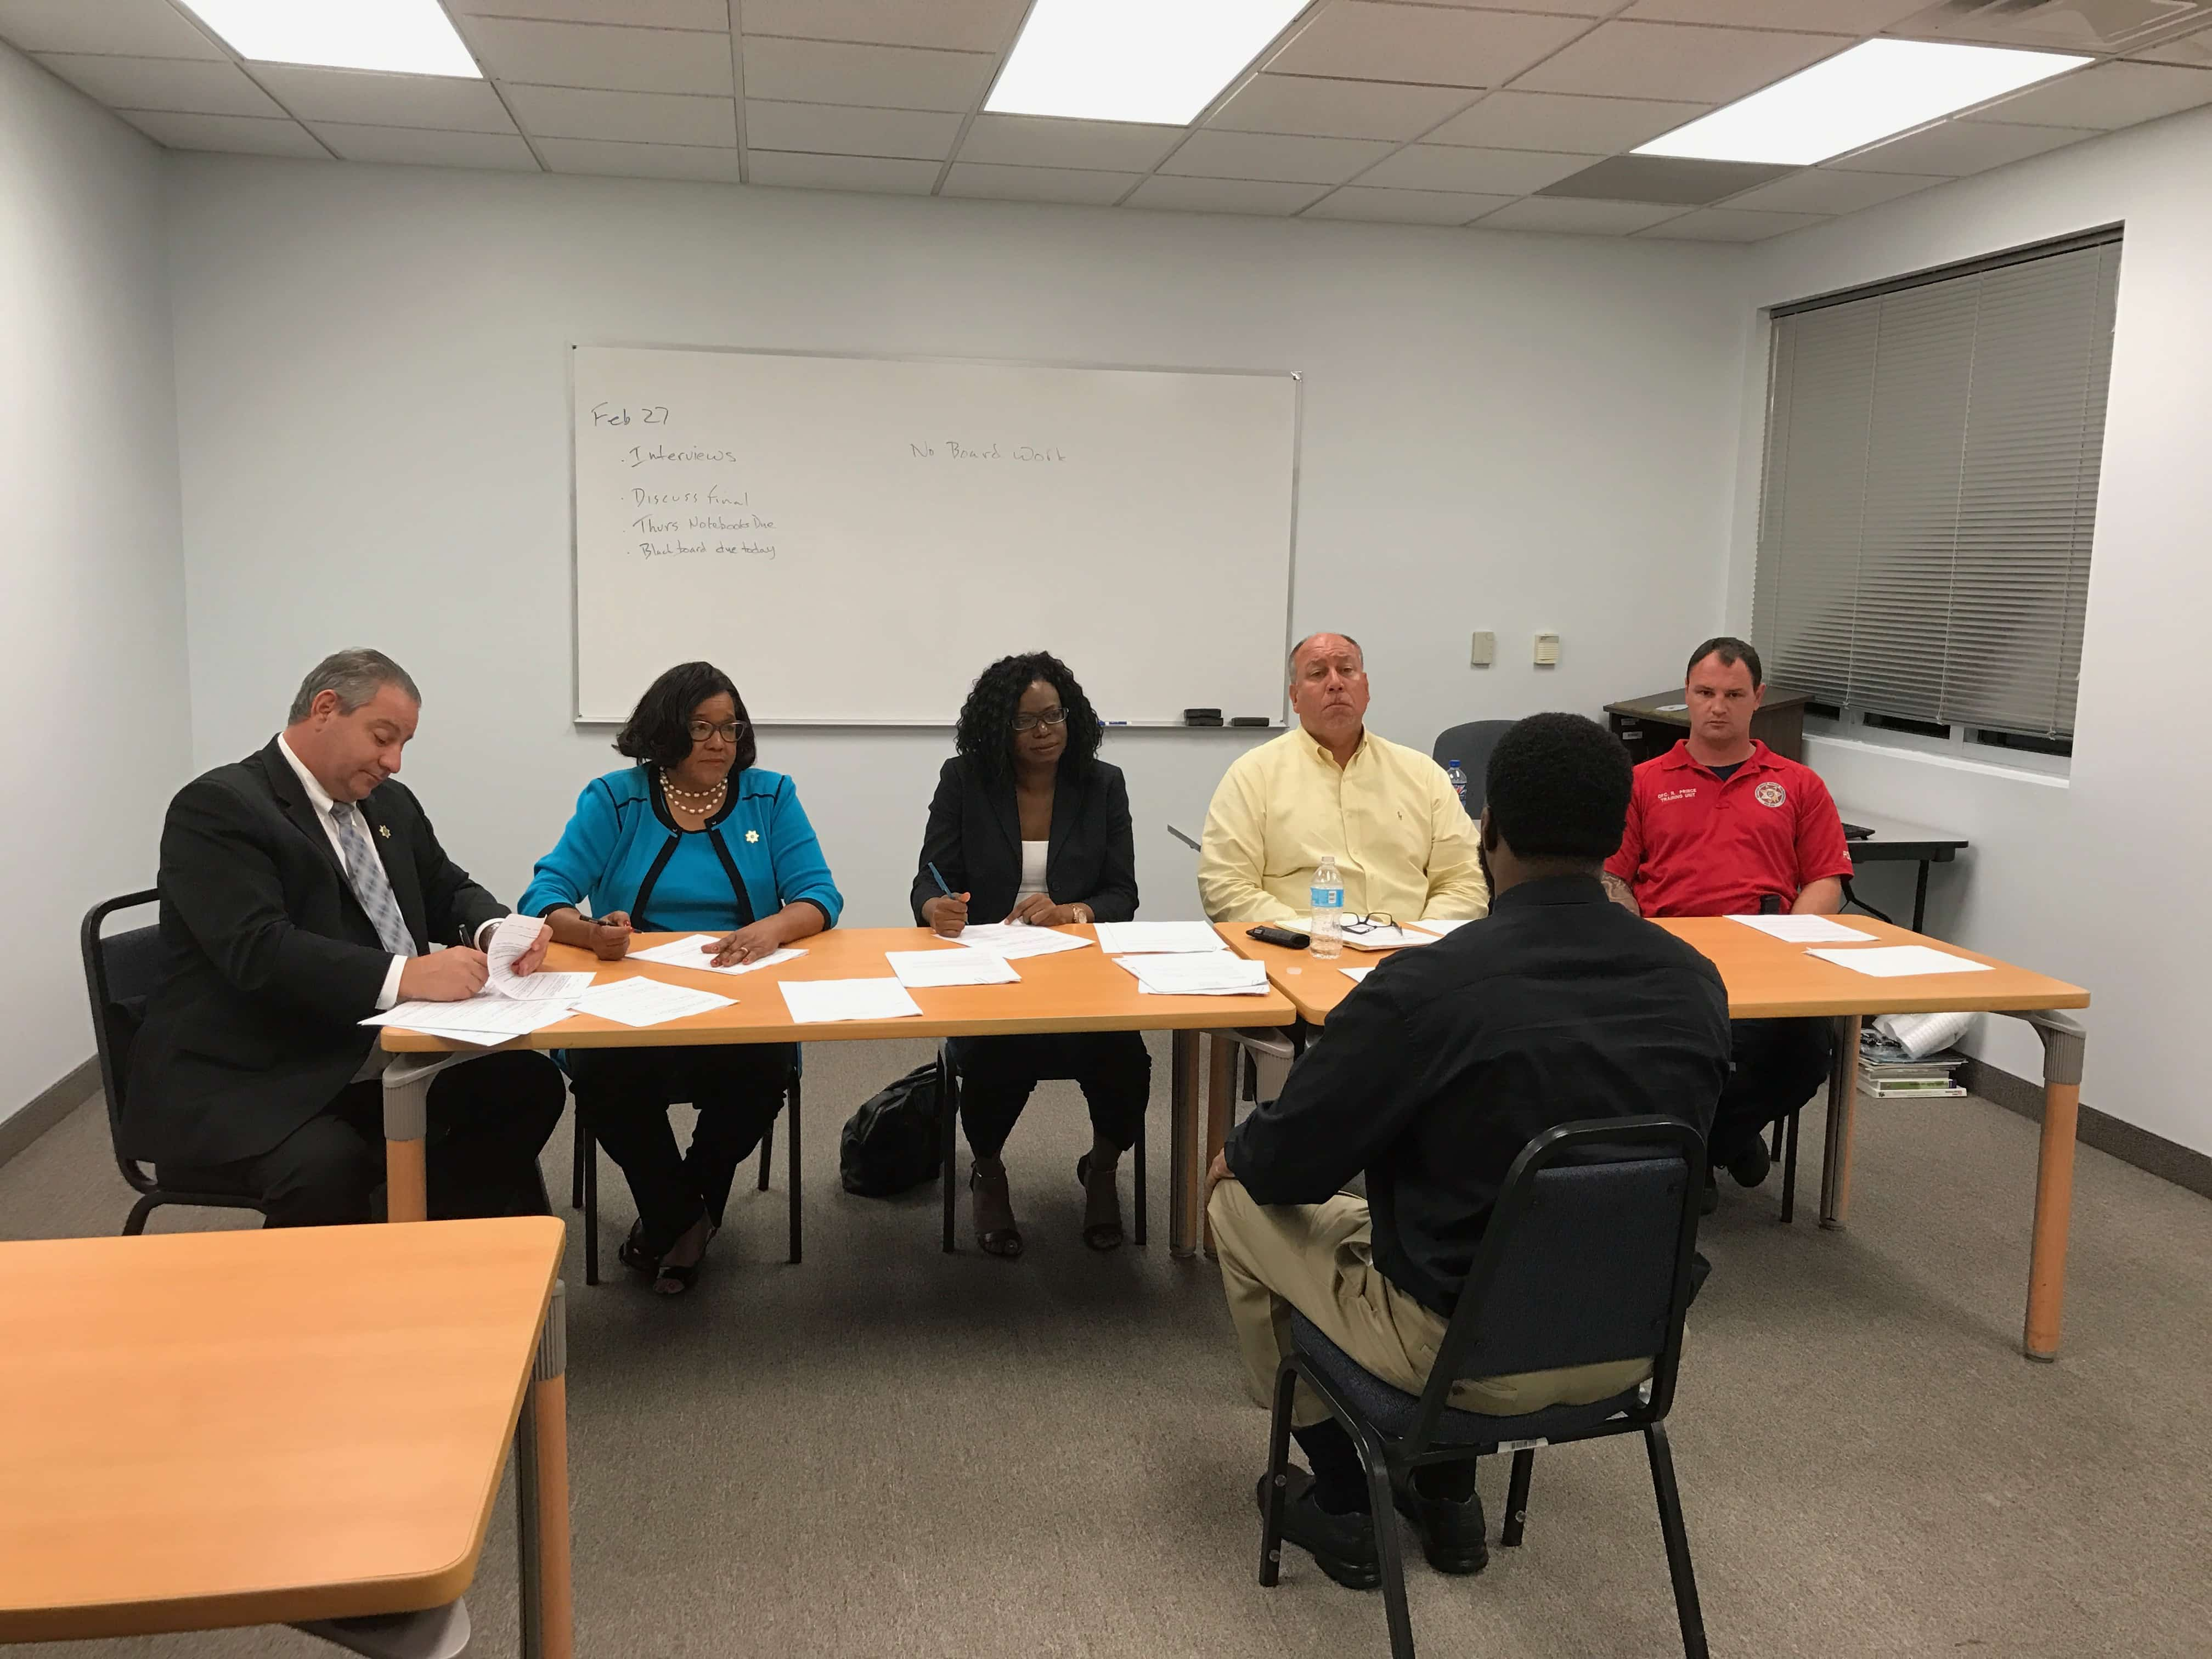 Criminal Justice Student S Experience Mock Panel Interview